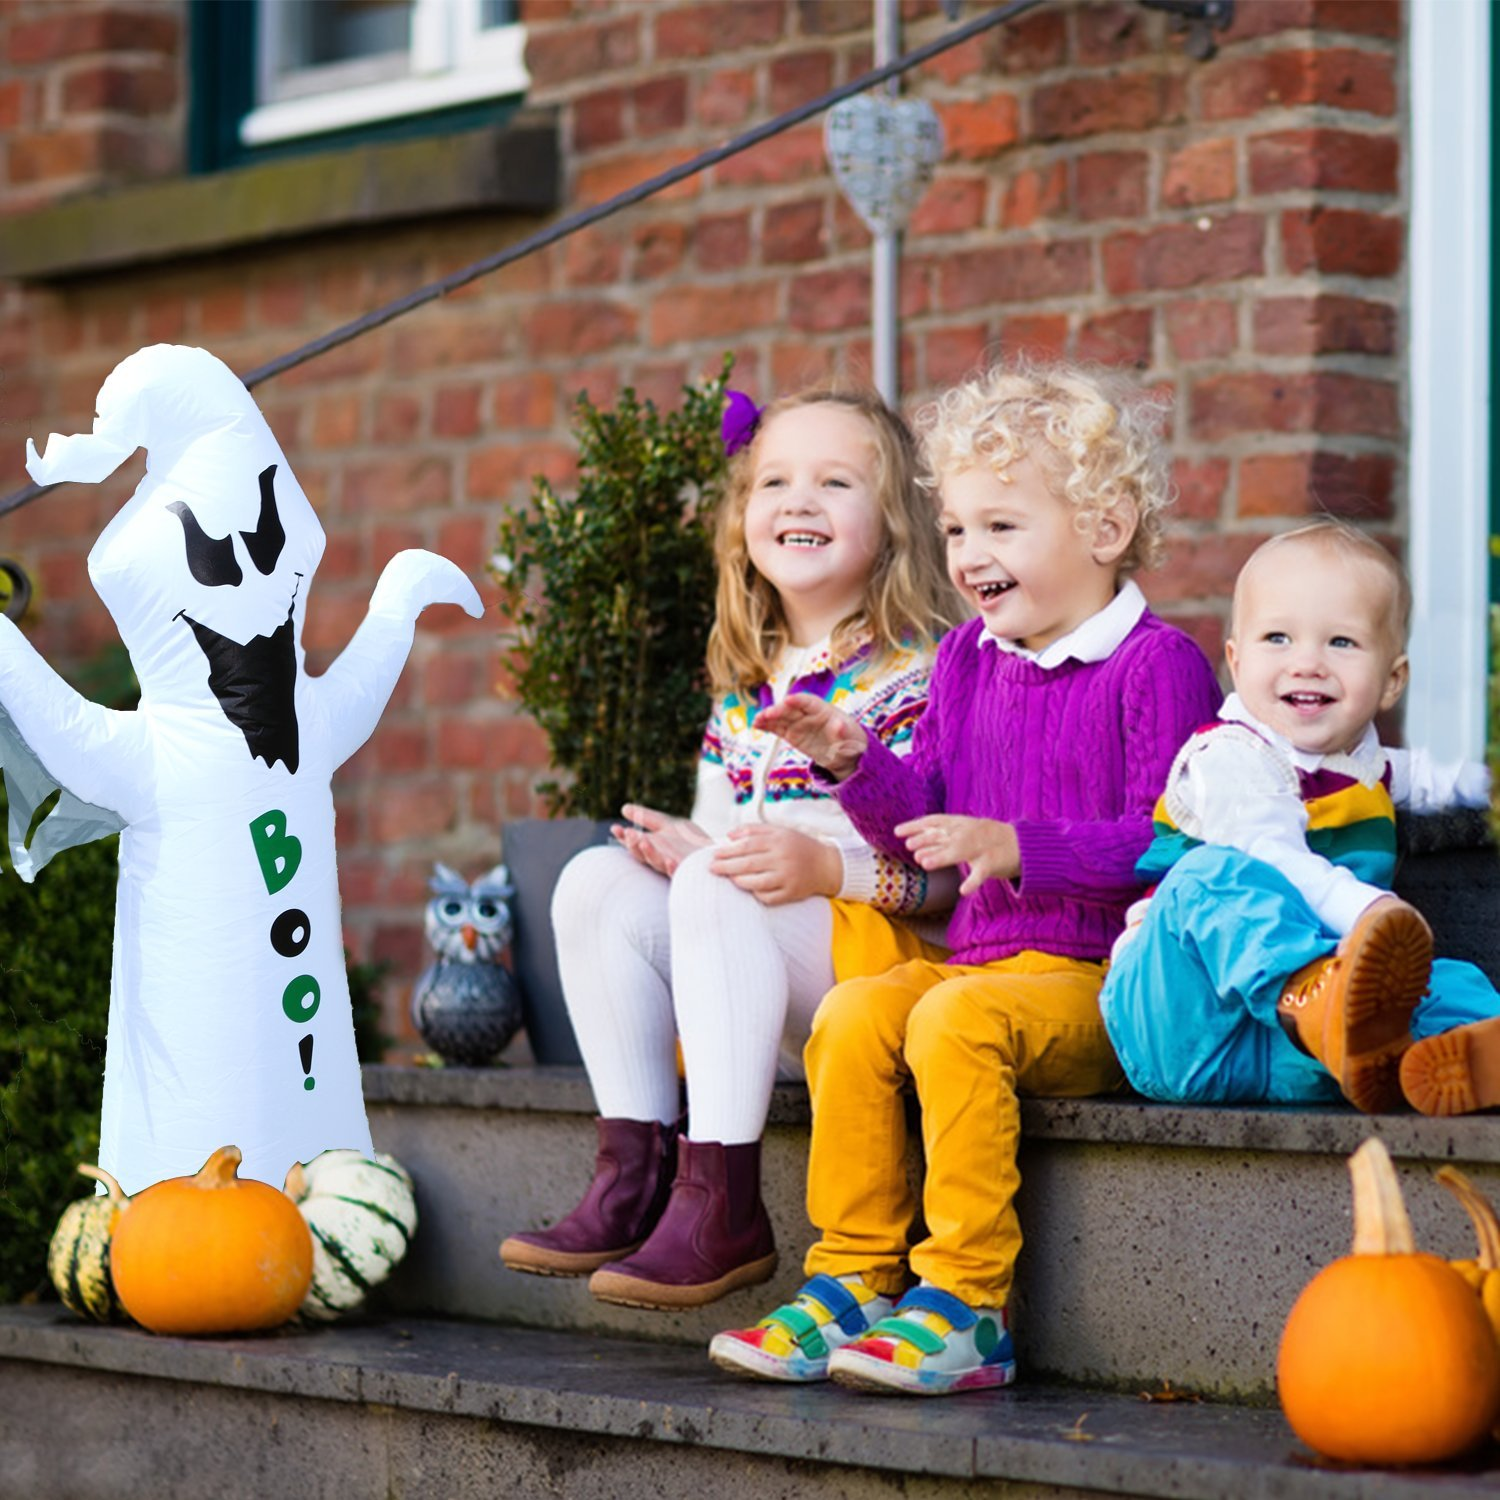 BrightTouch Inflatable Halloween Decorations - Ghost. Outdoor or Indoor (White) by BrightTouch (Image #2)